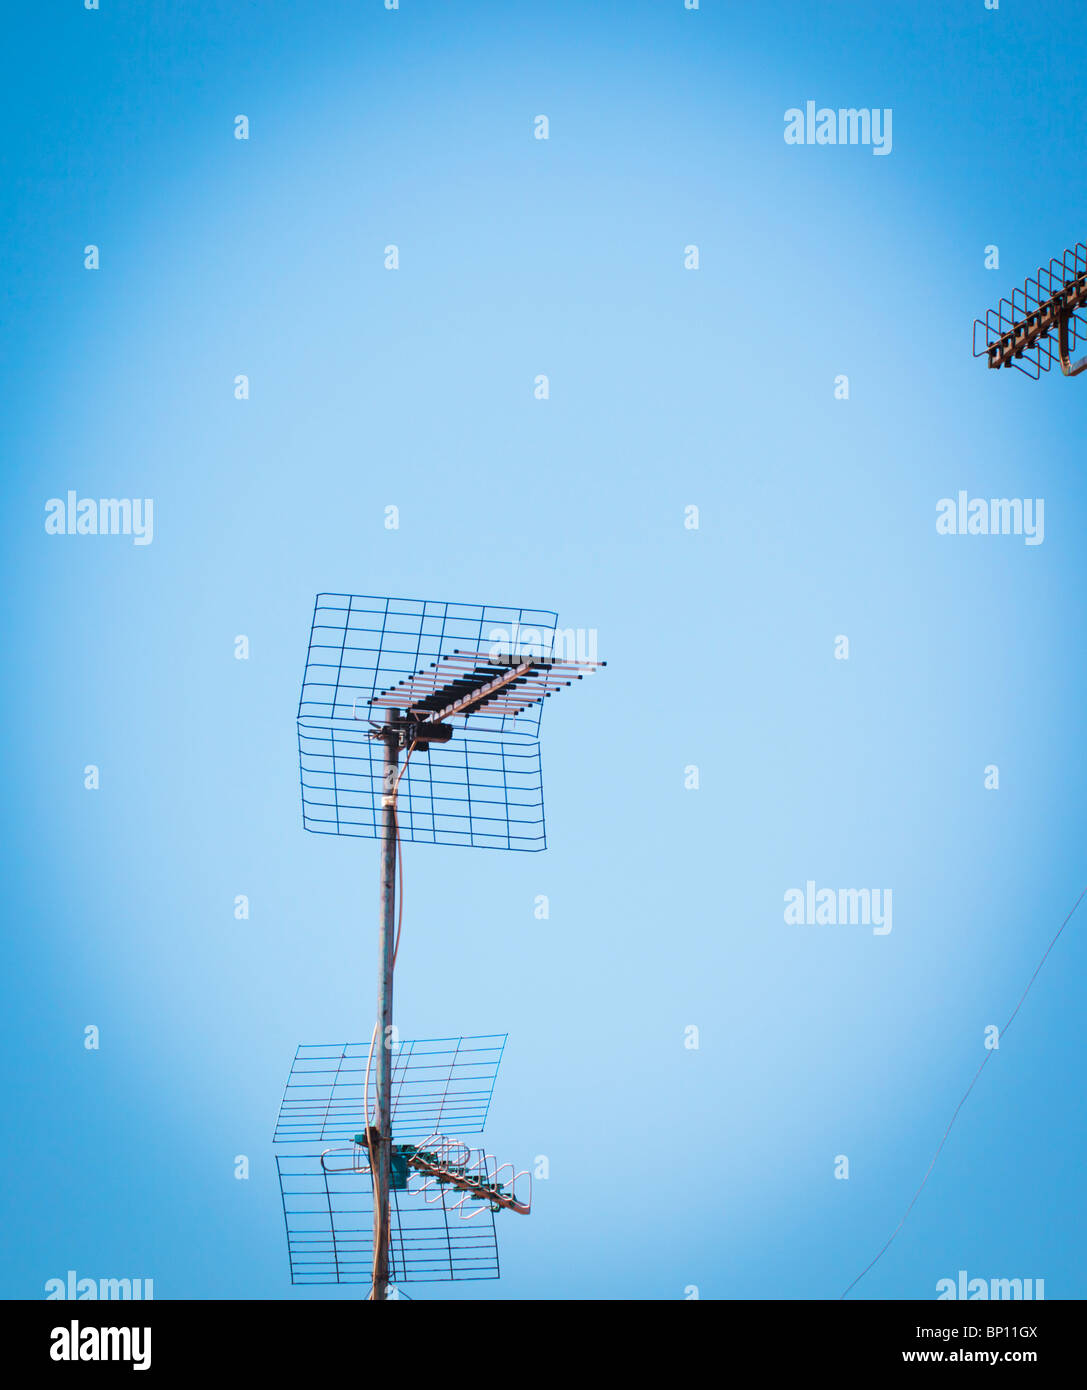 Television aerials on a roof. - Stock Image